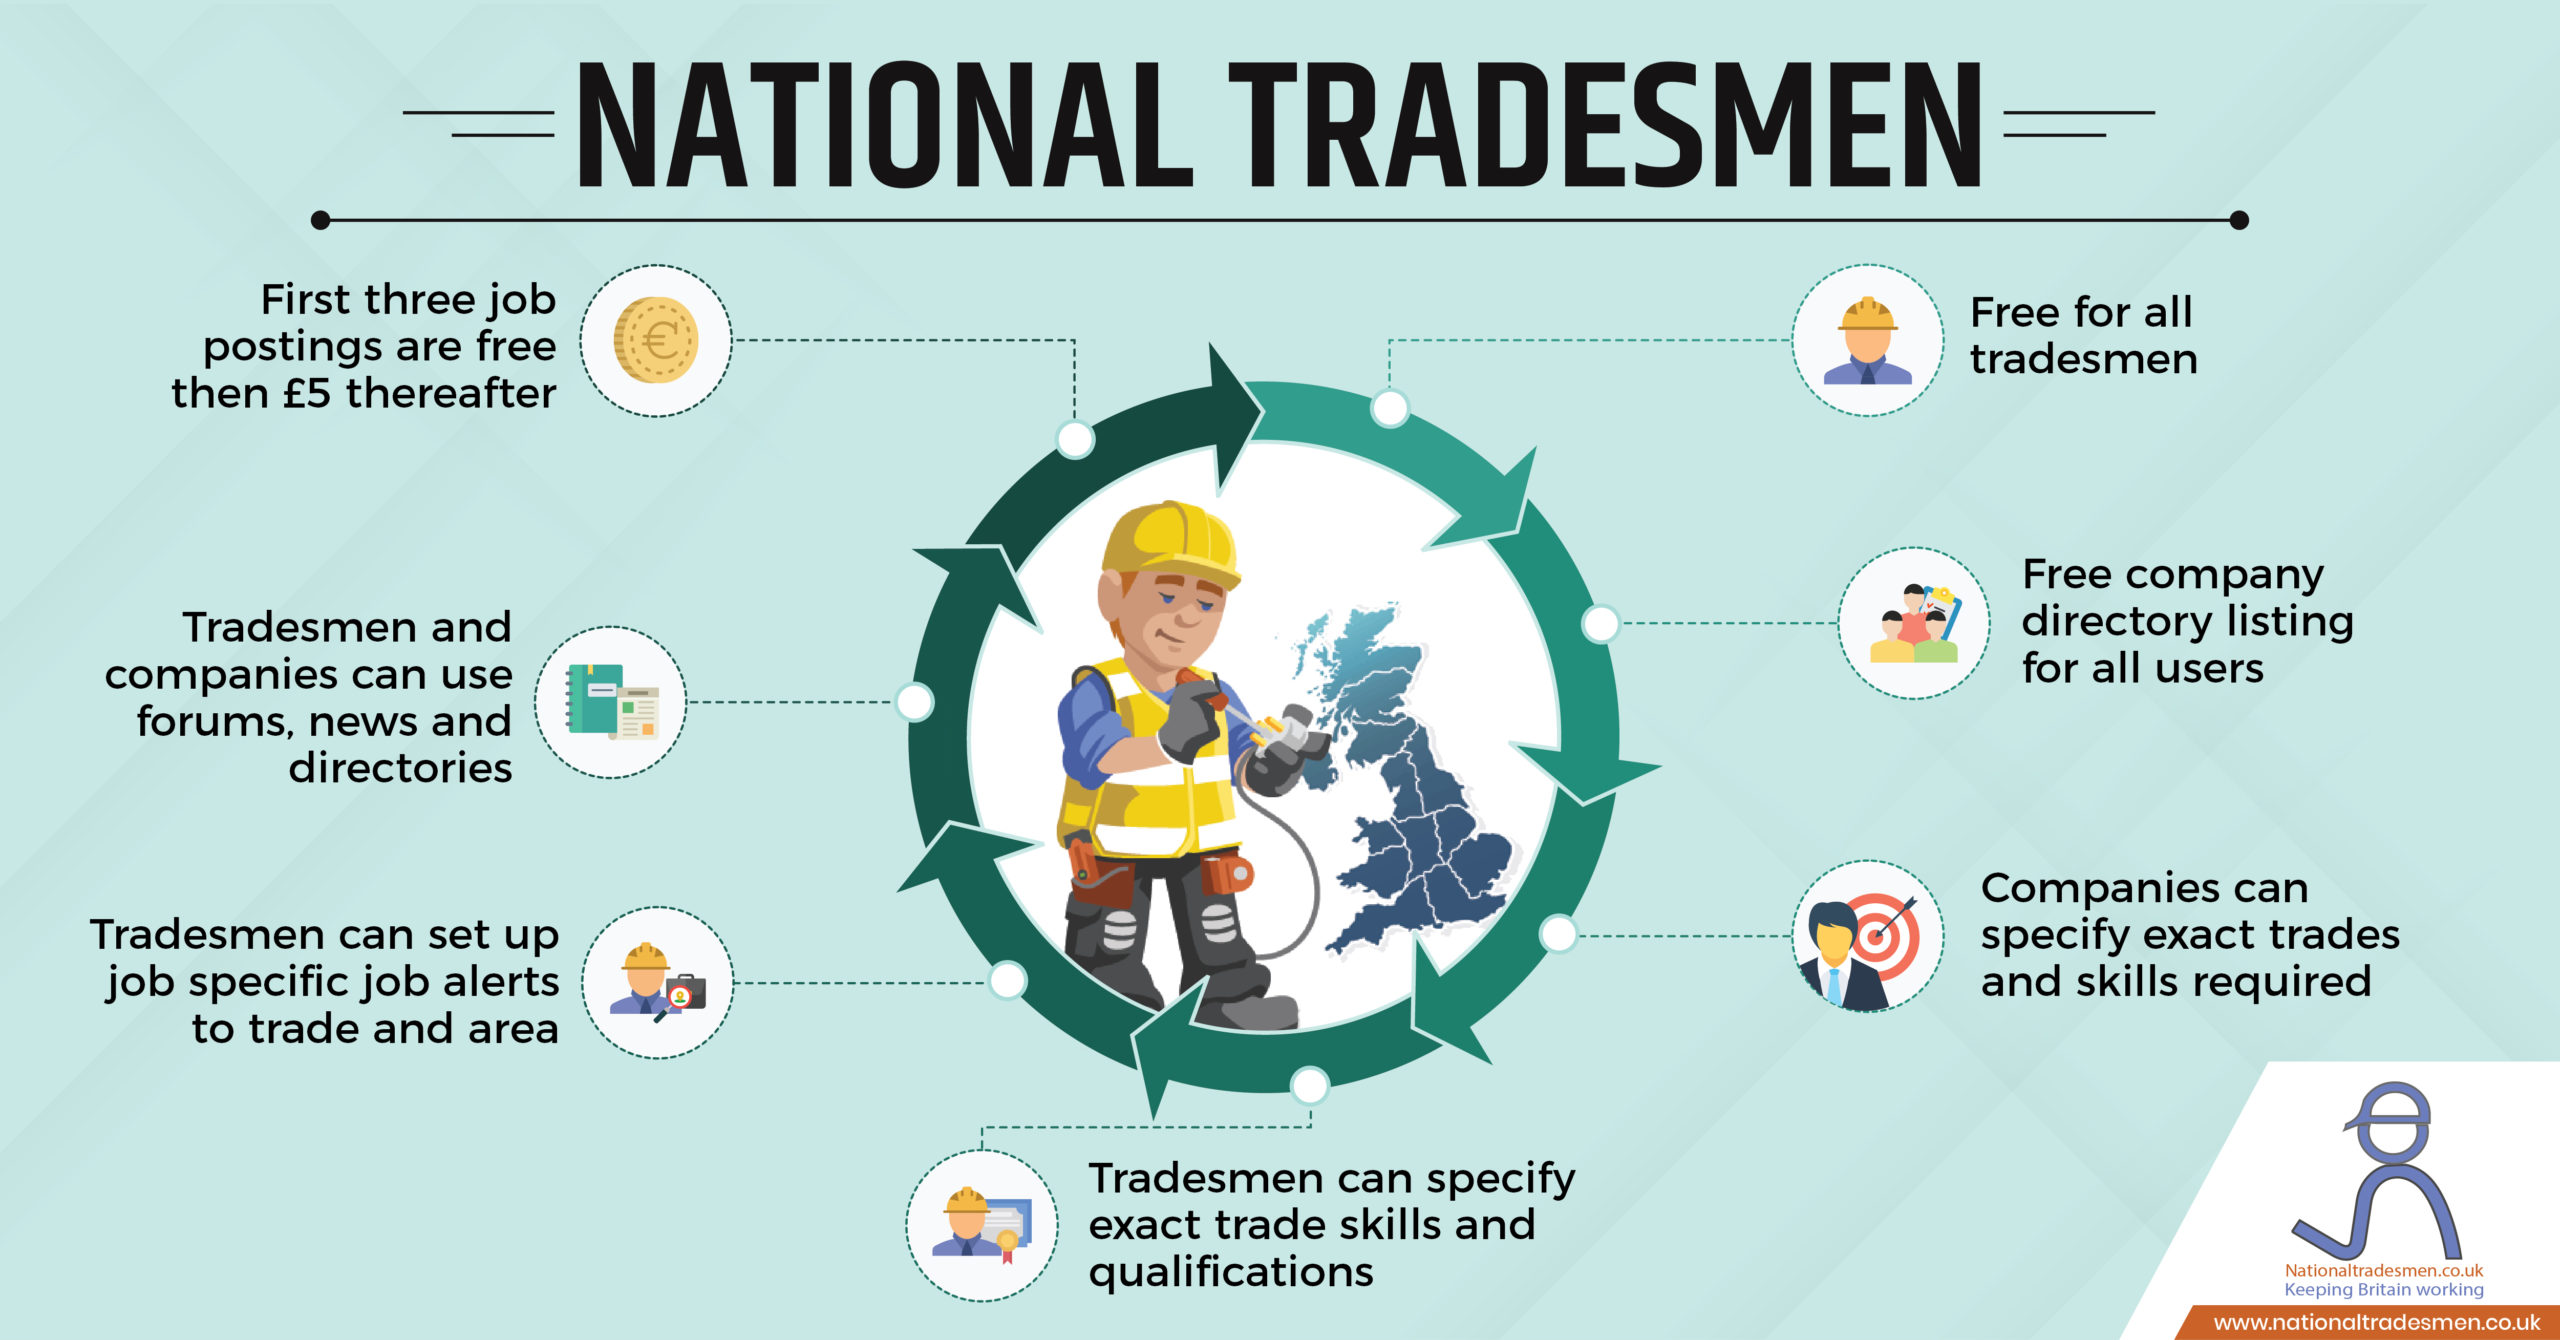 National Tradesmen